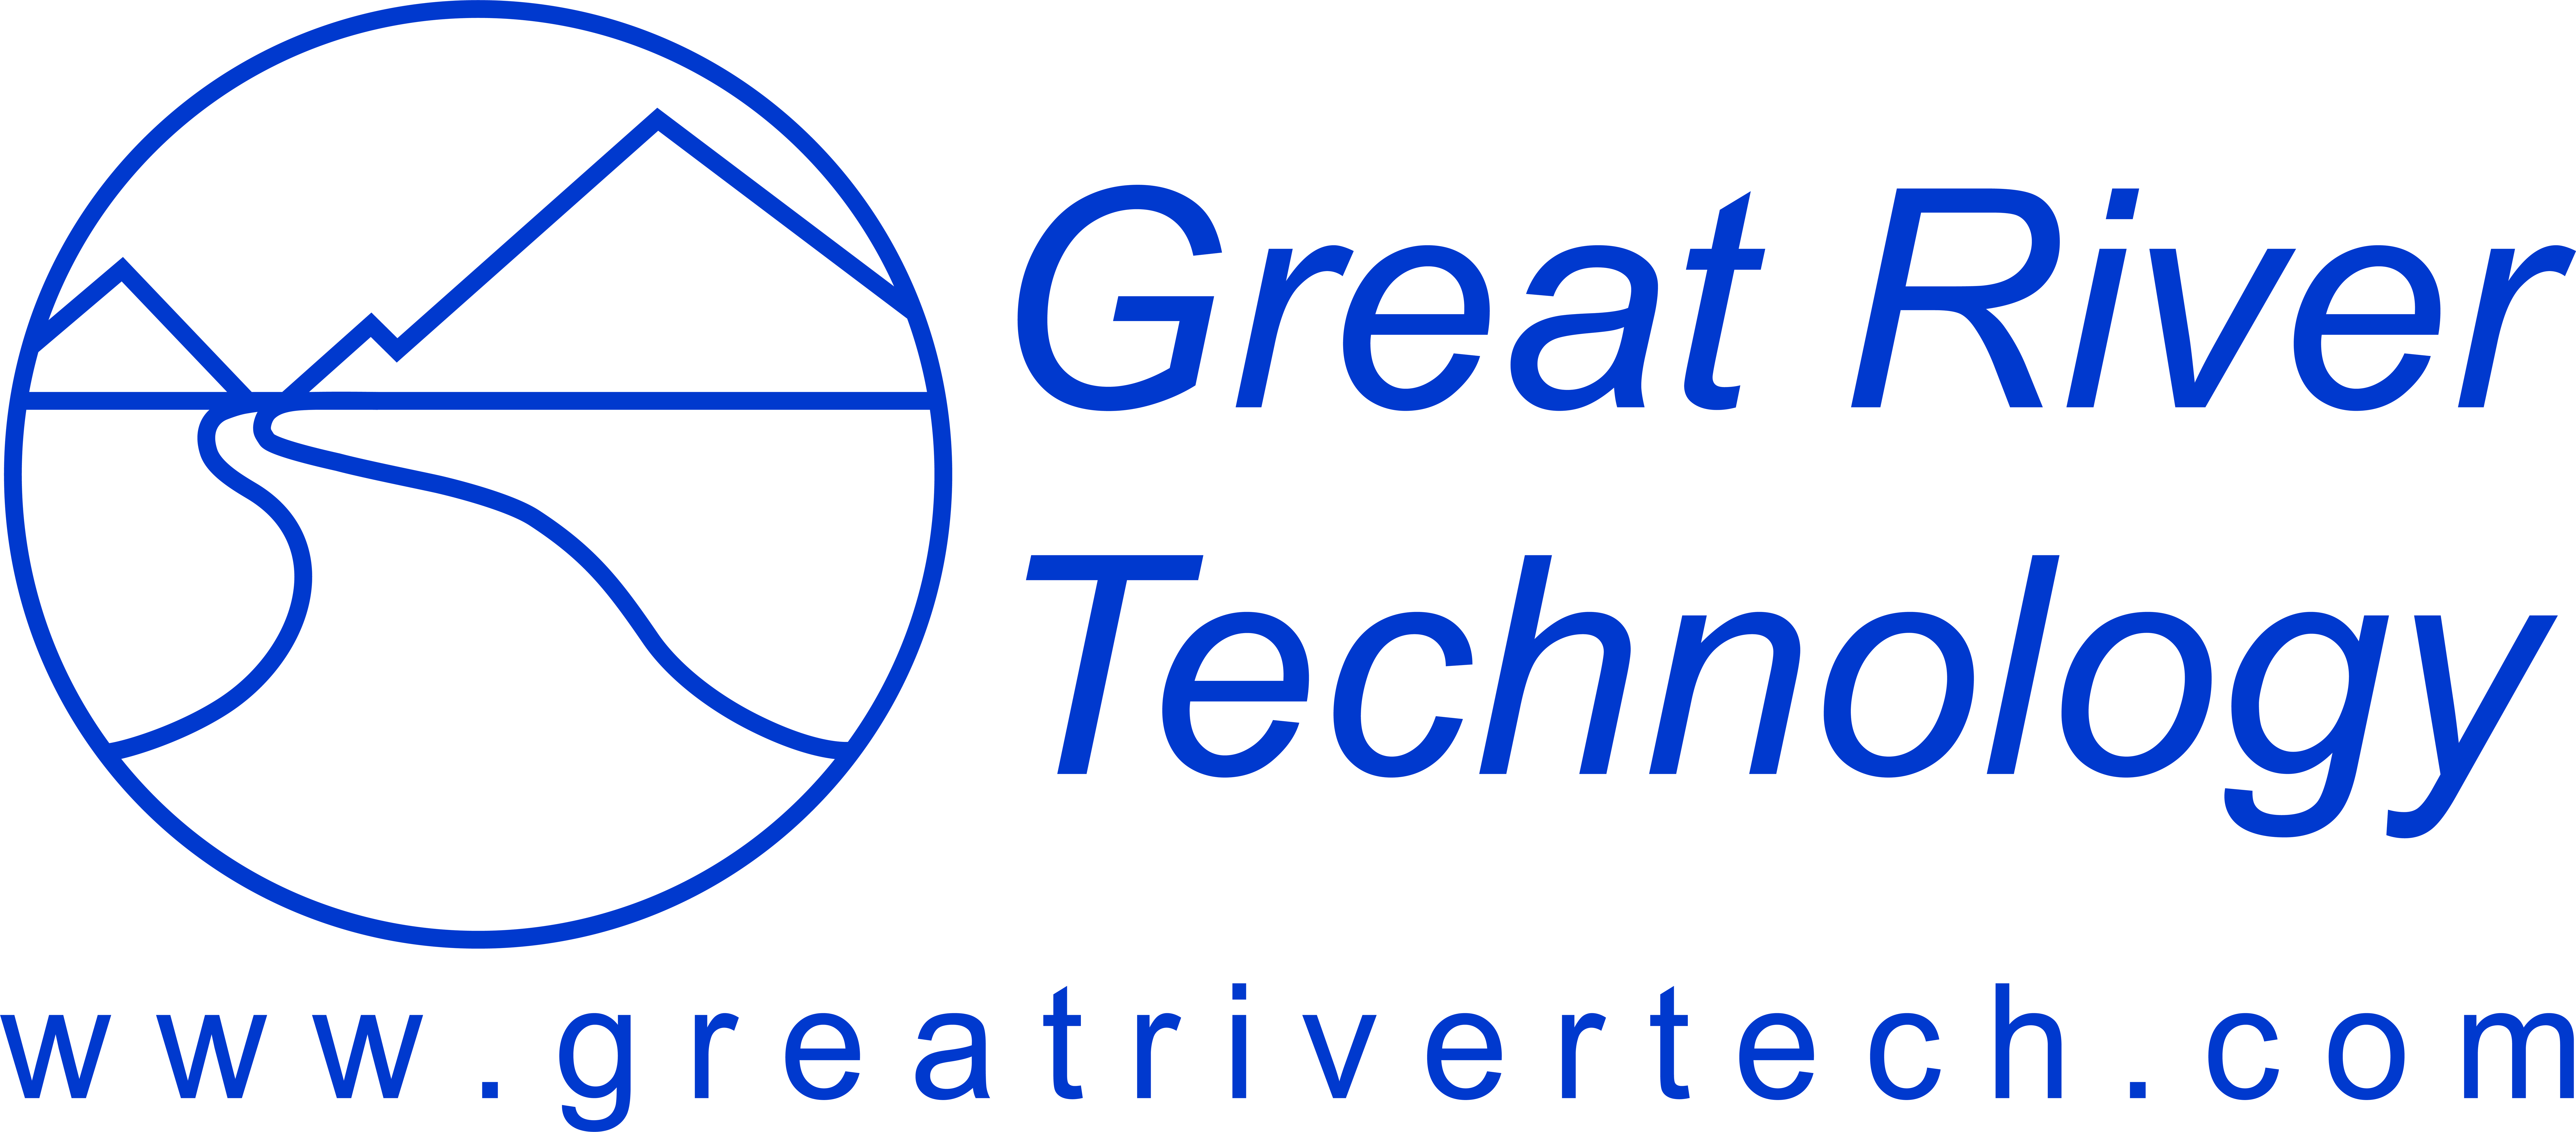 Great River Technology